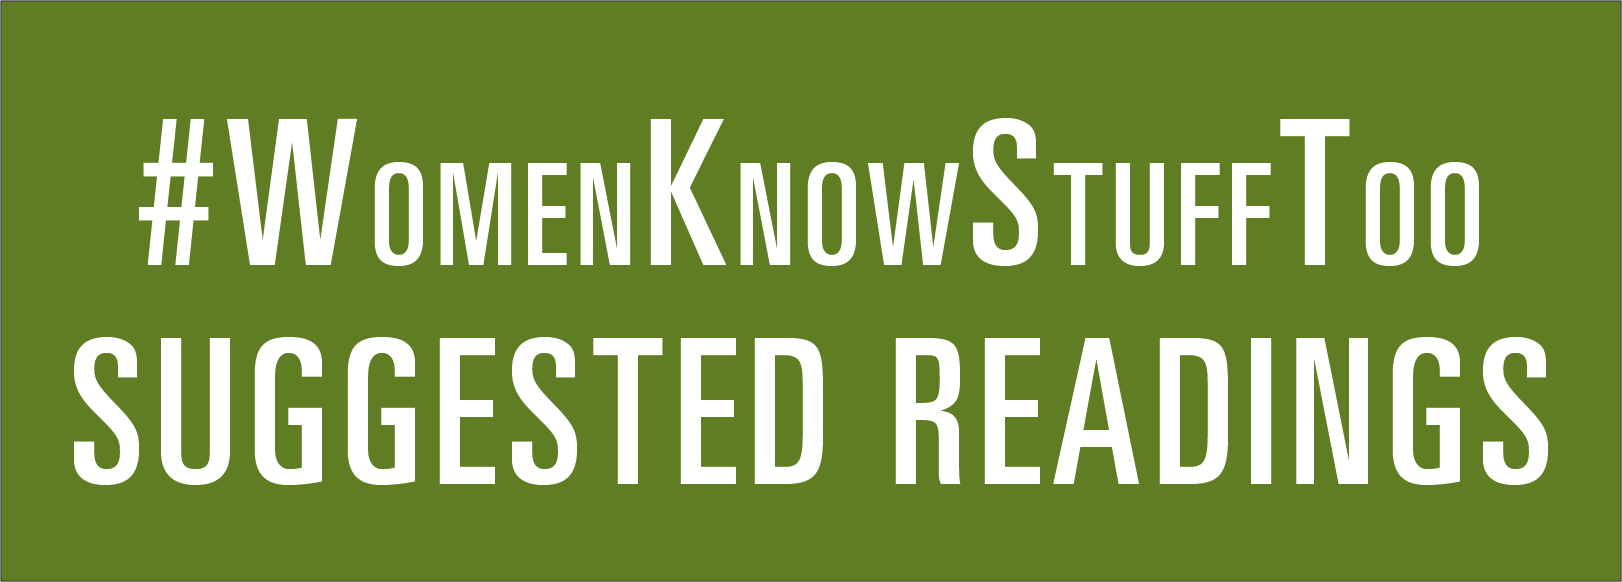 Link for suggested reading list on #WomenKnowStuffToo